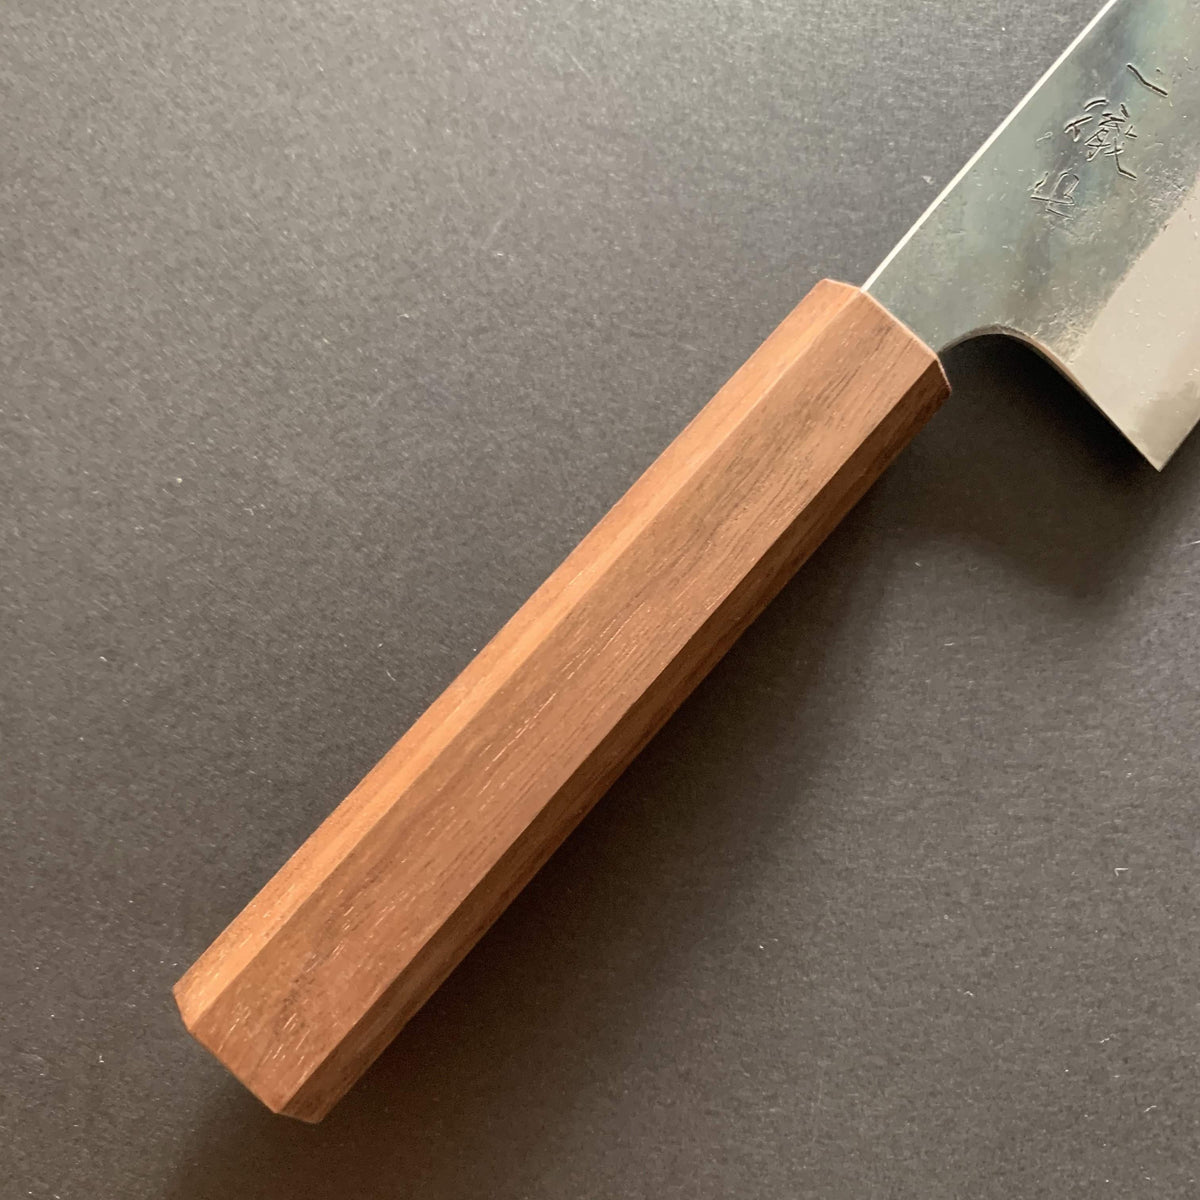 Santoku knife, Shirogami 1, kurouchi finish - Ittetsu